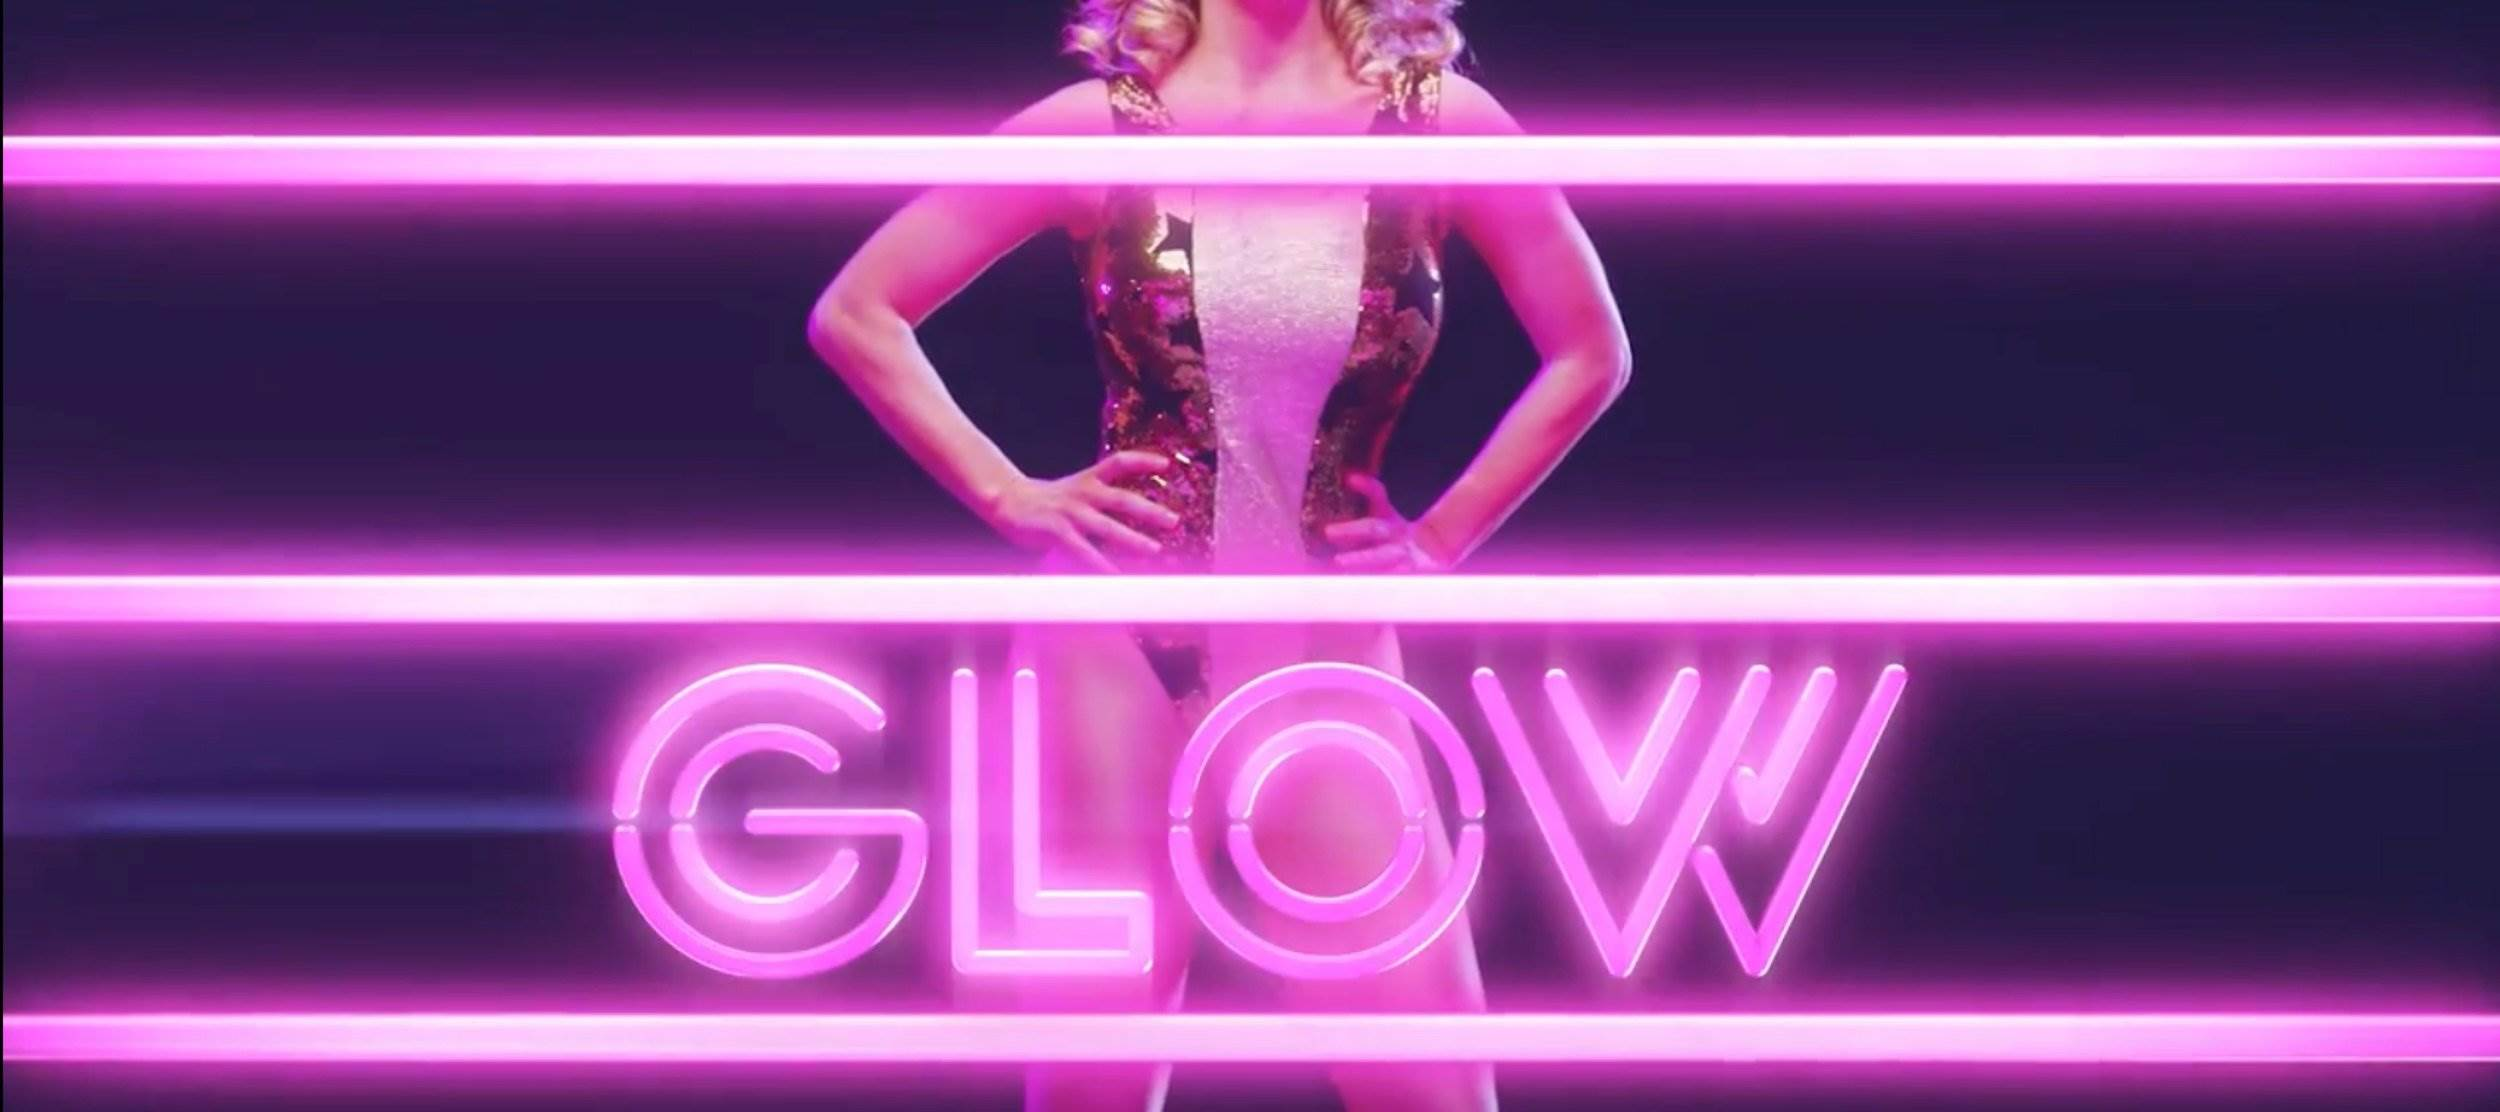 glow teaser trailer - 10 Things You Should Know About GLOW